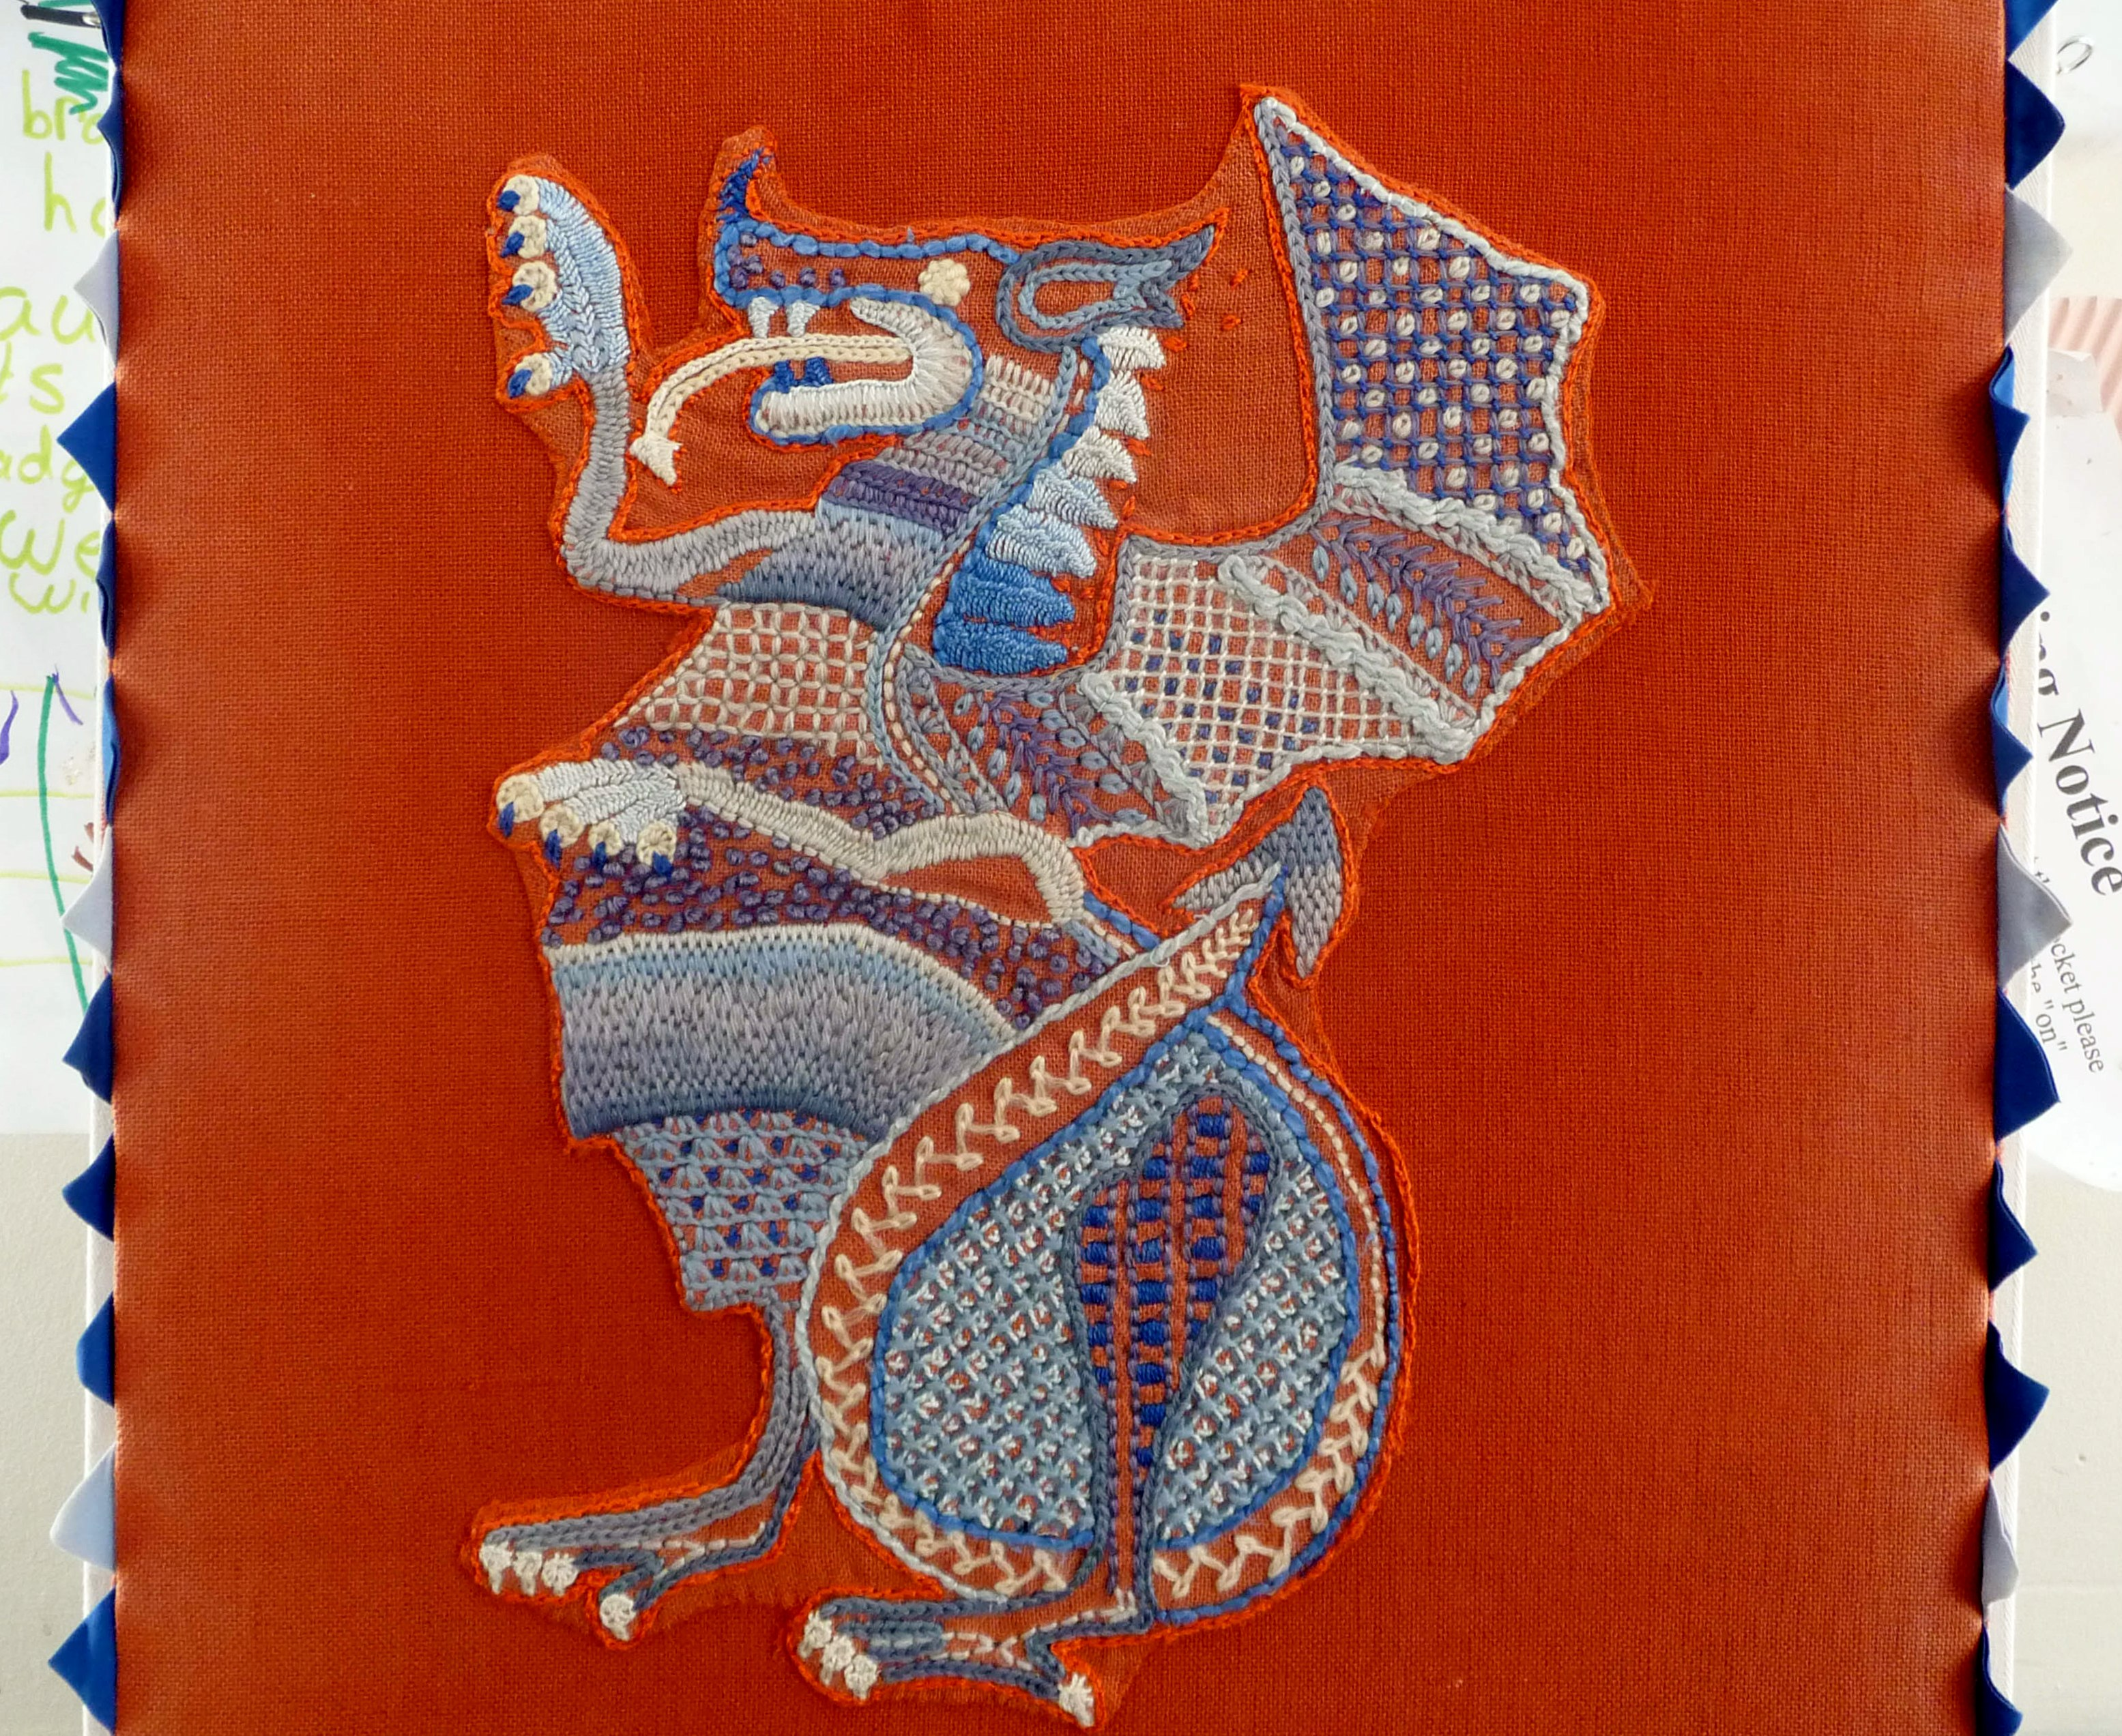 Welsh dragon embroidered by Marie Stacey